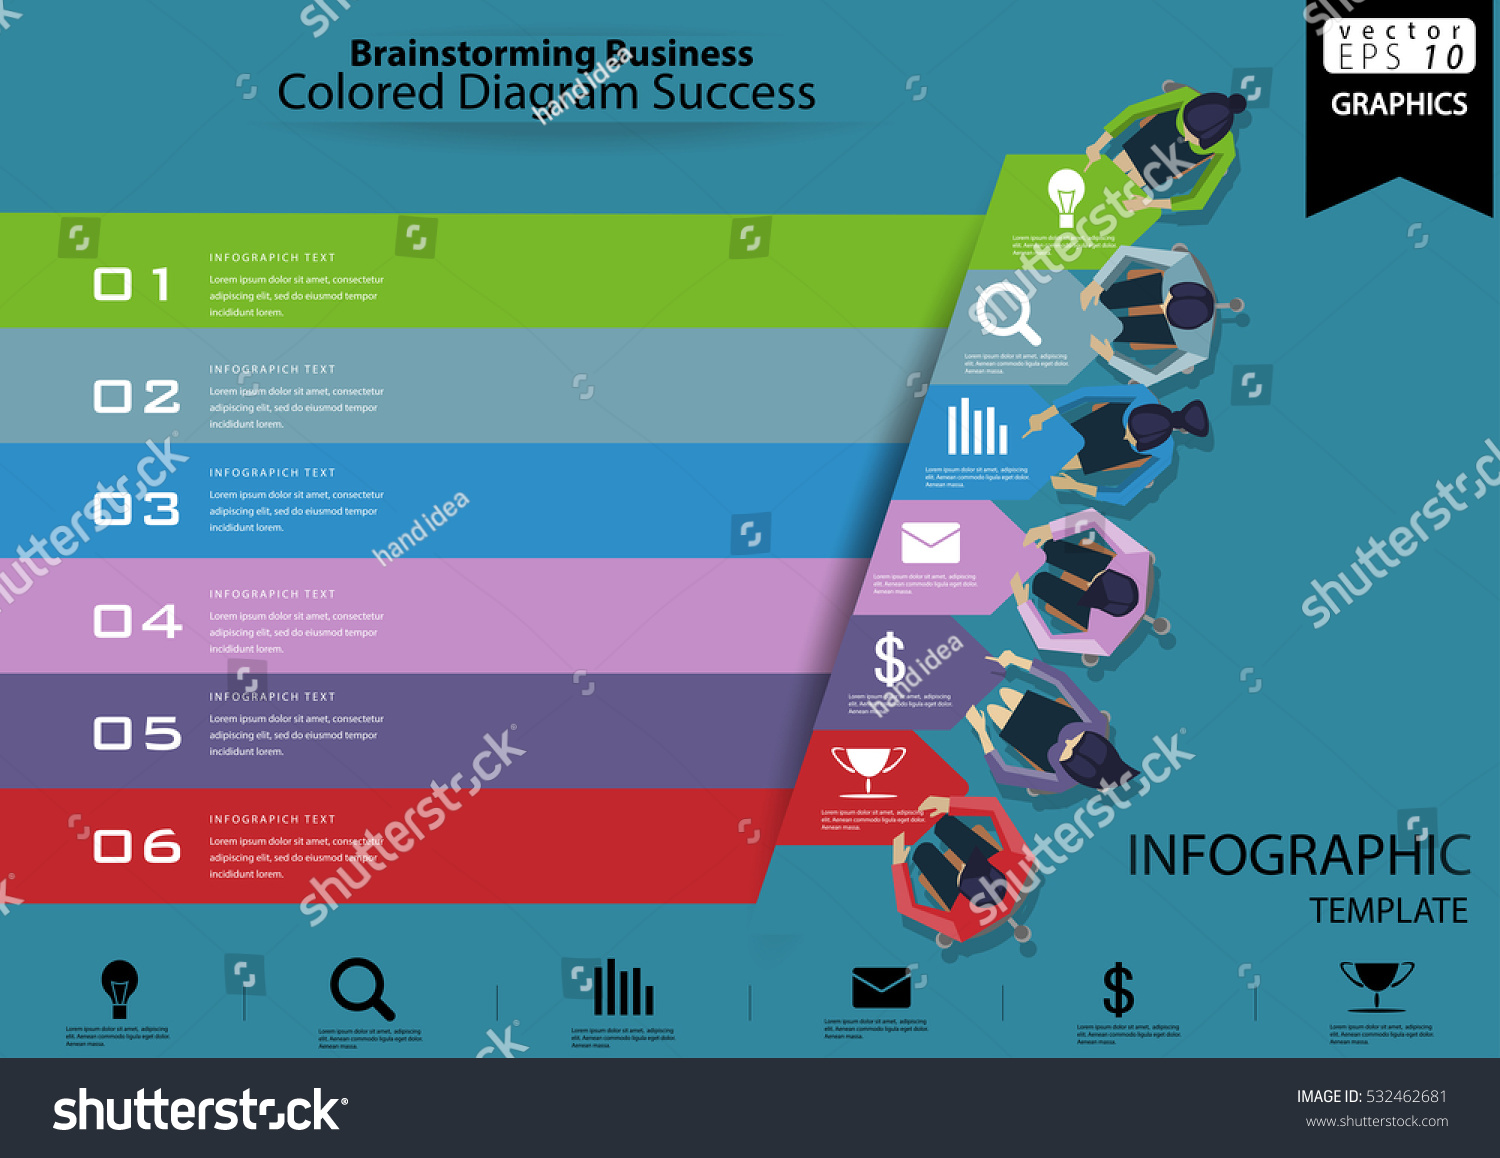 Brainstorming Business Colored Diagram Success Modern Design Idea And Concept Vector